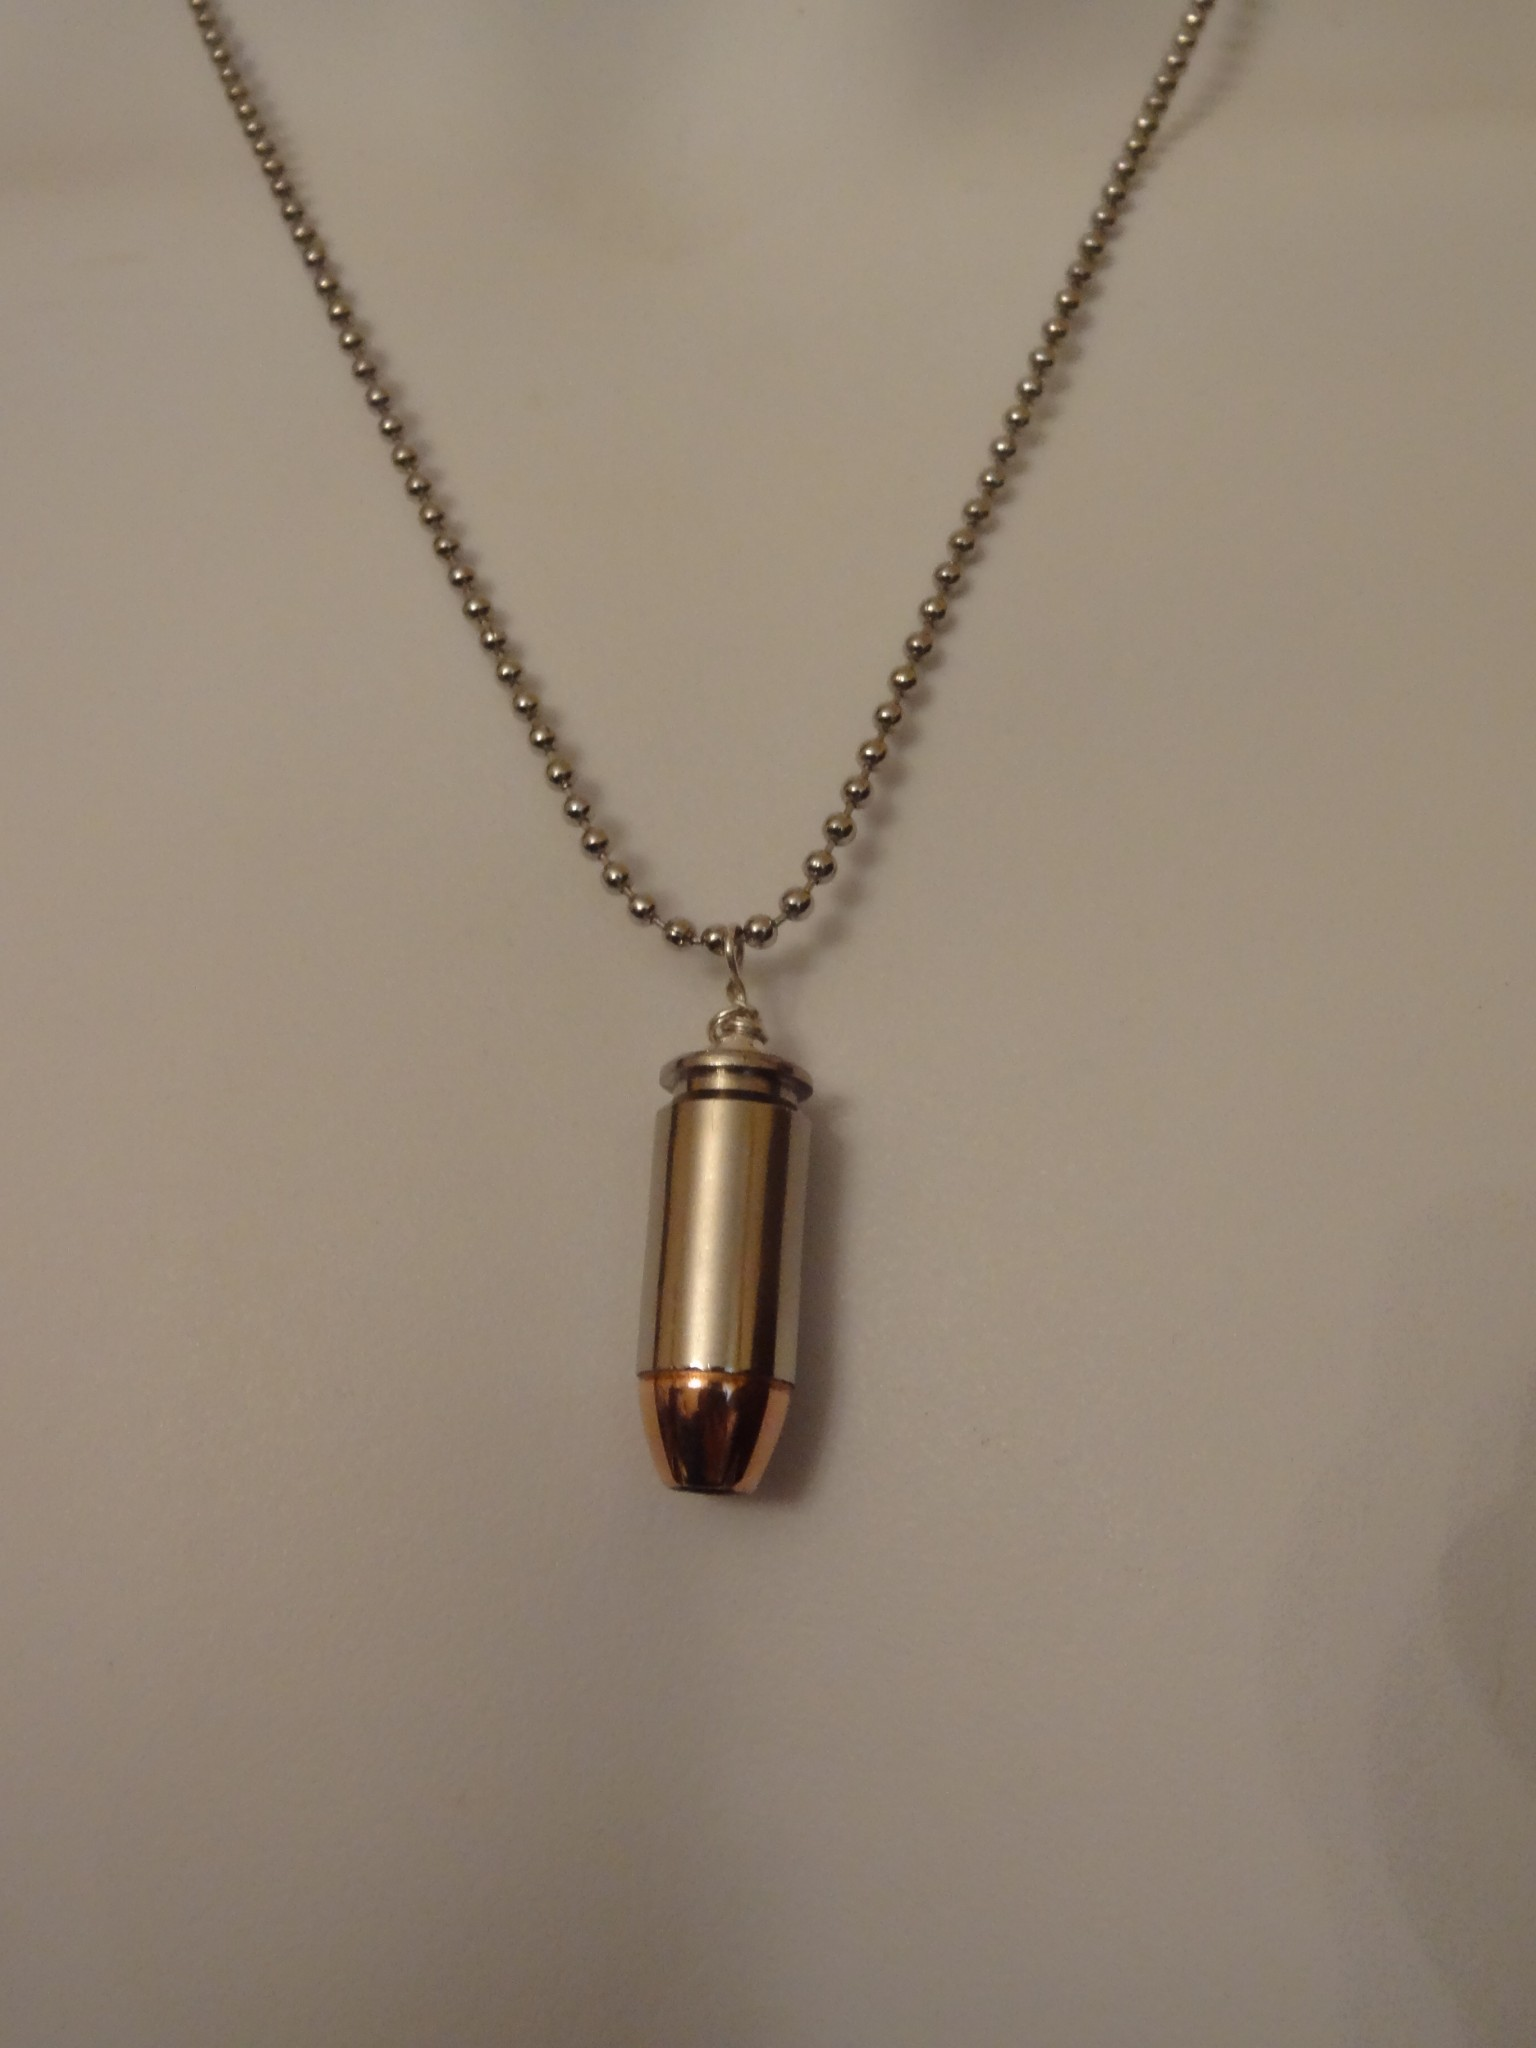 .40 Caliber Cartridge-Nickel Plated Case & Hollow Point Bullet